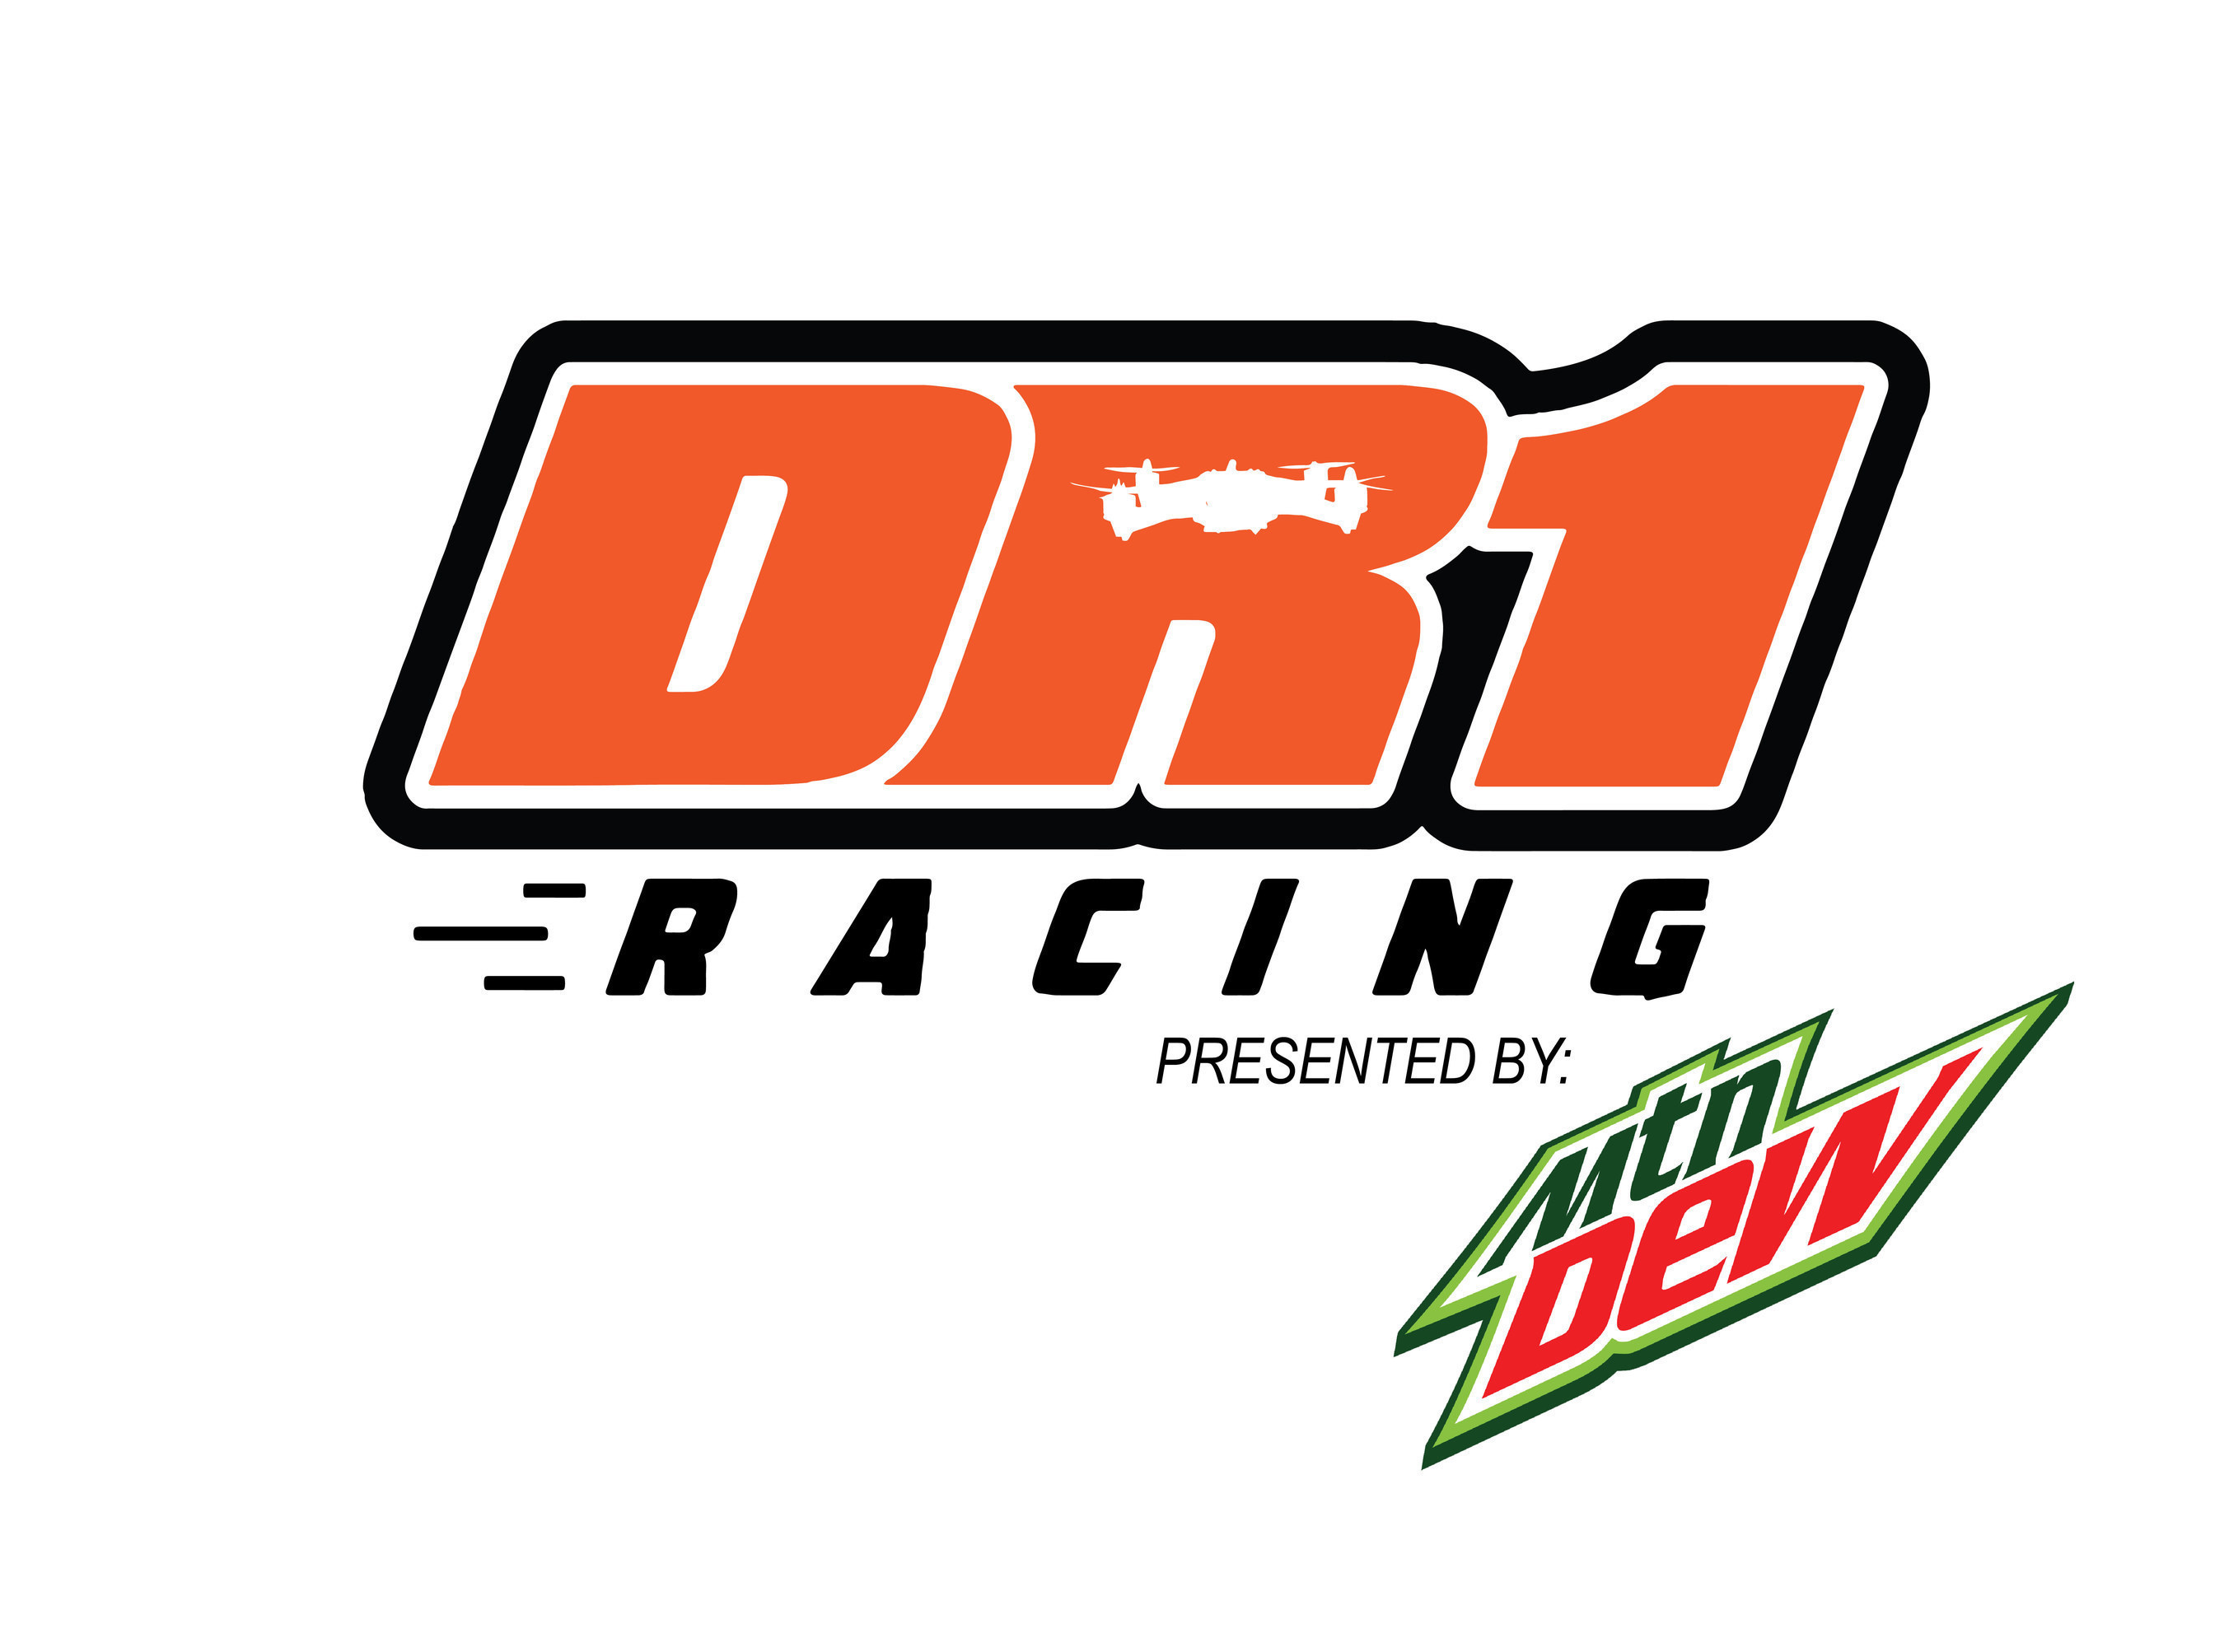 MOUNTAIN DEW(r) AND DR1 RACING PARTNER FOR LAUNCH OF GLOBAL DRONE RACING SERIES